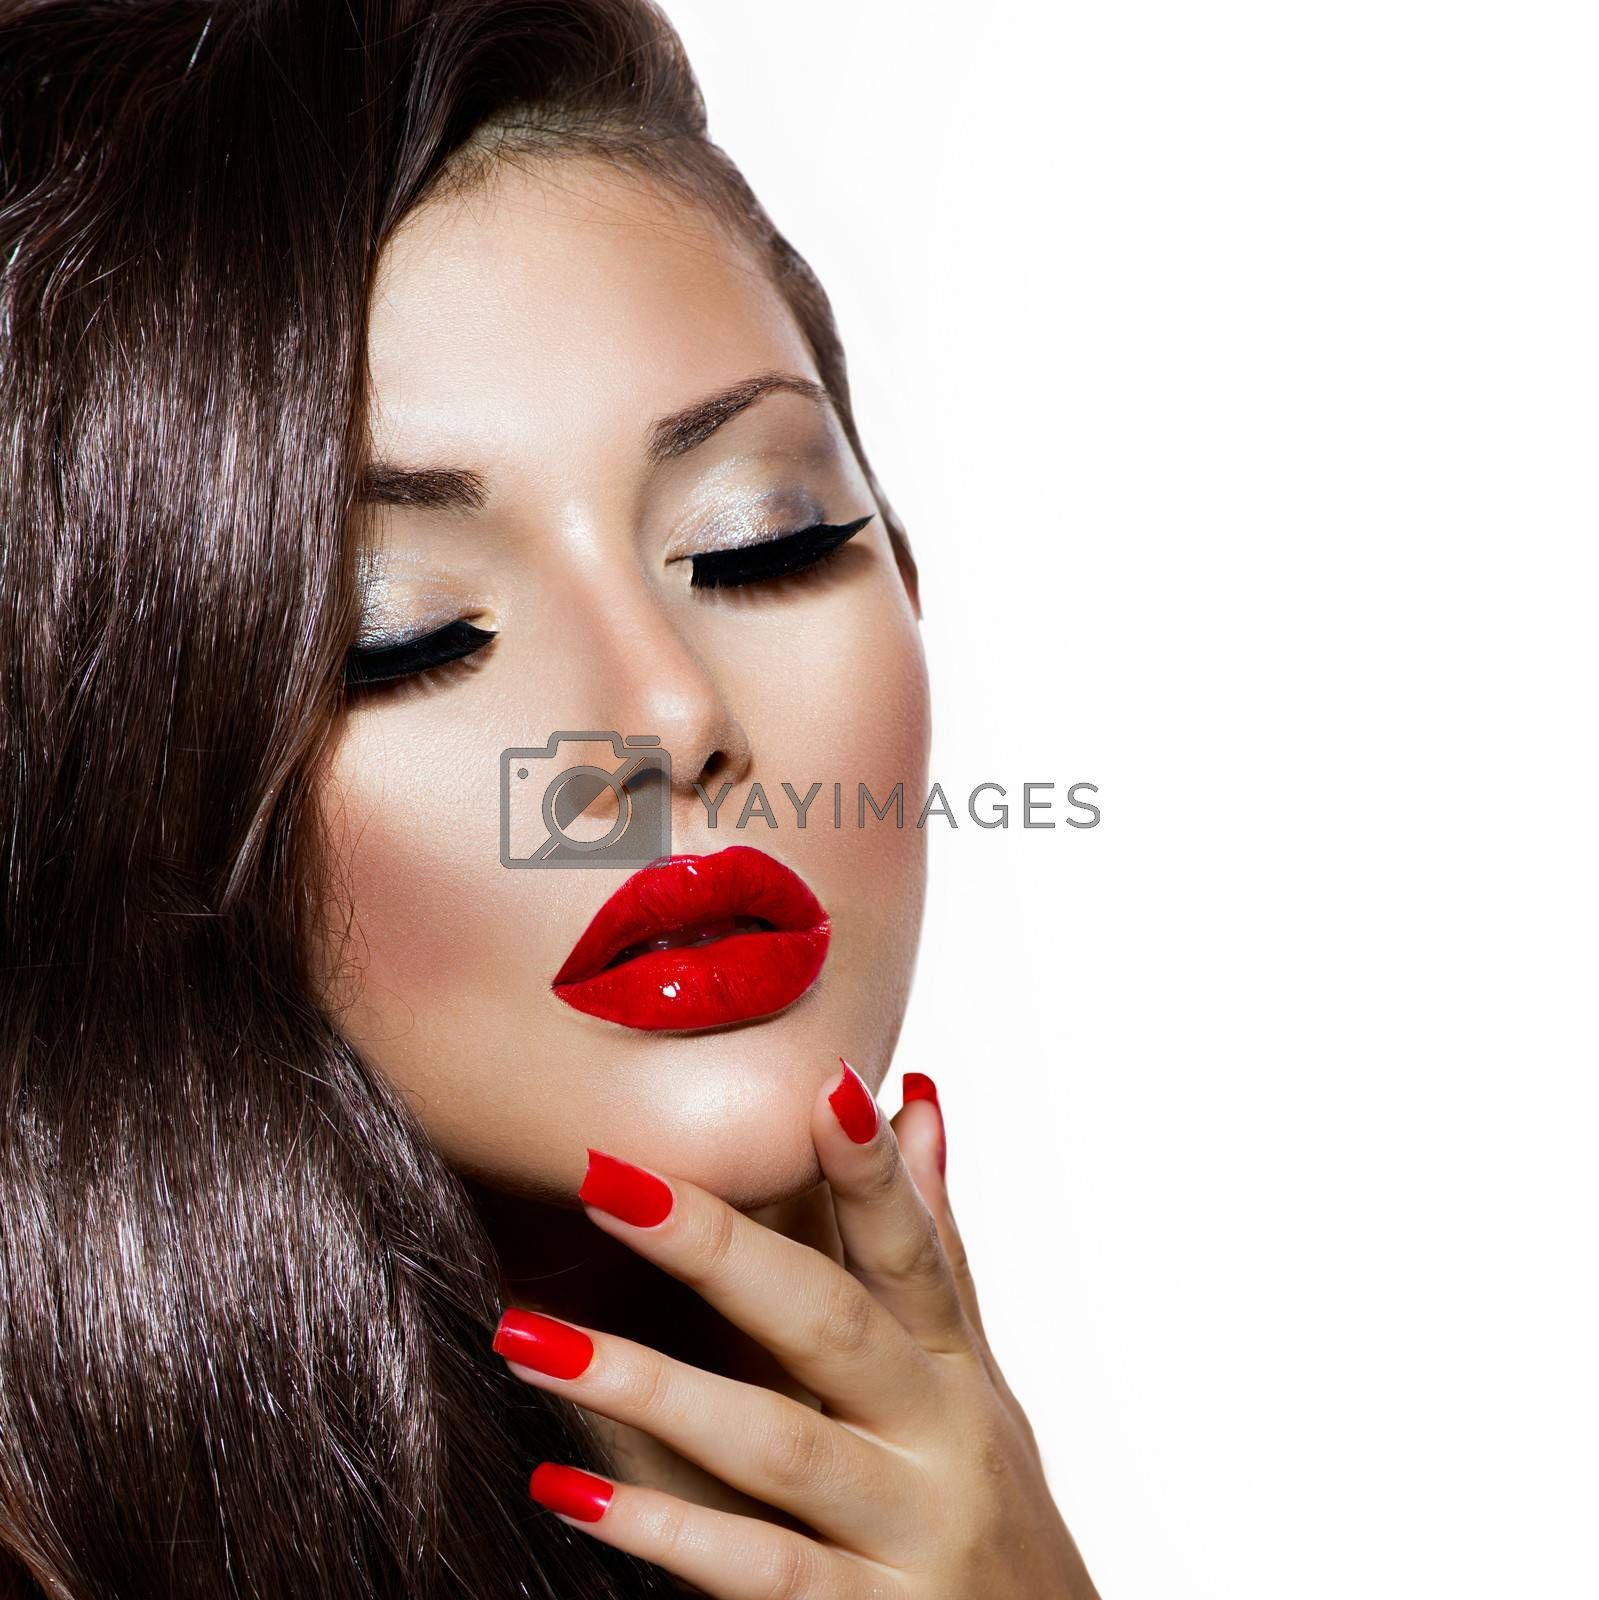 Sexy Beauty Girl with Red Lips and Nails. Provocative Makeup by SubbotinaA